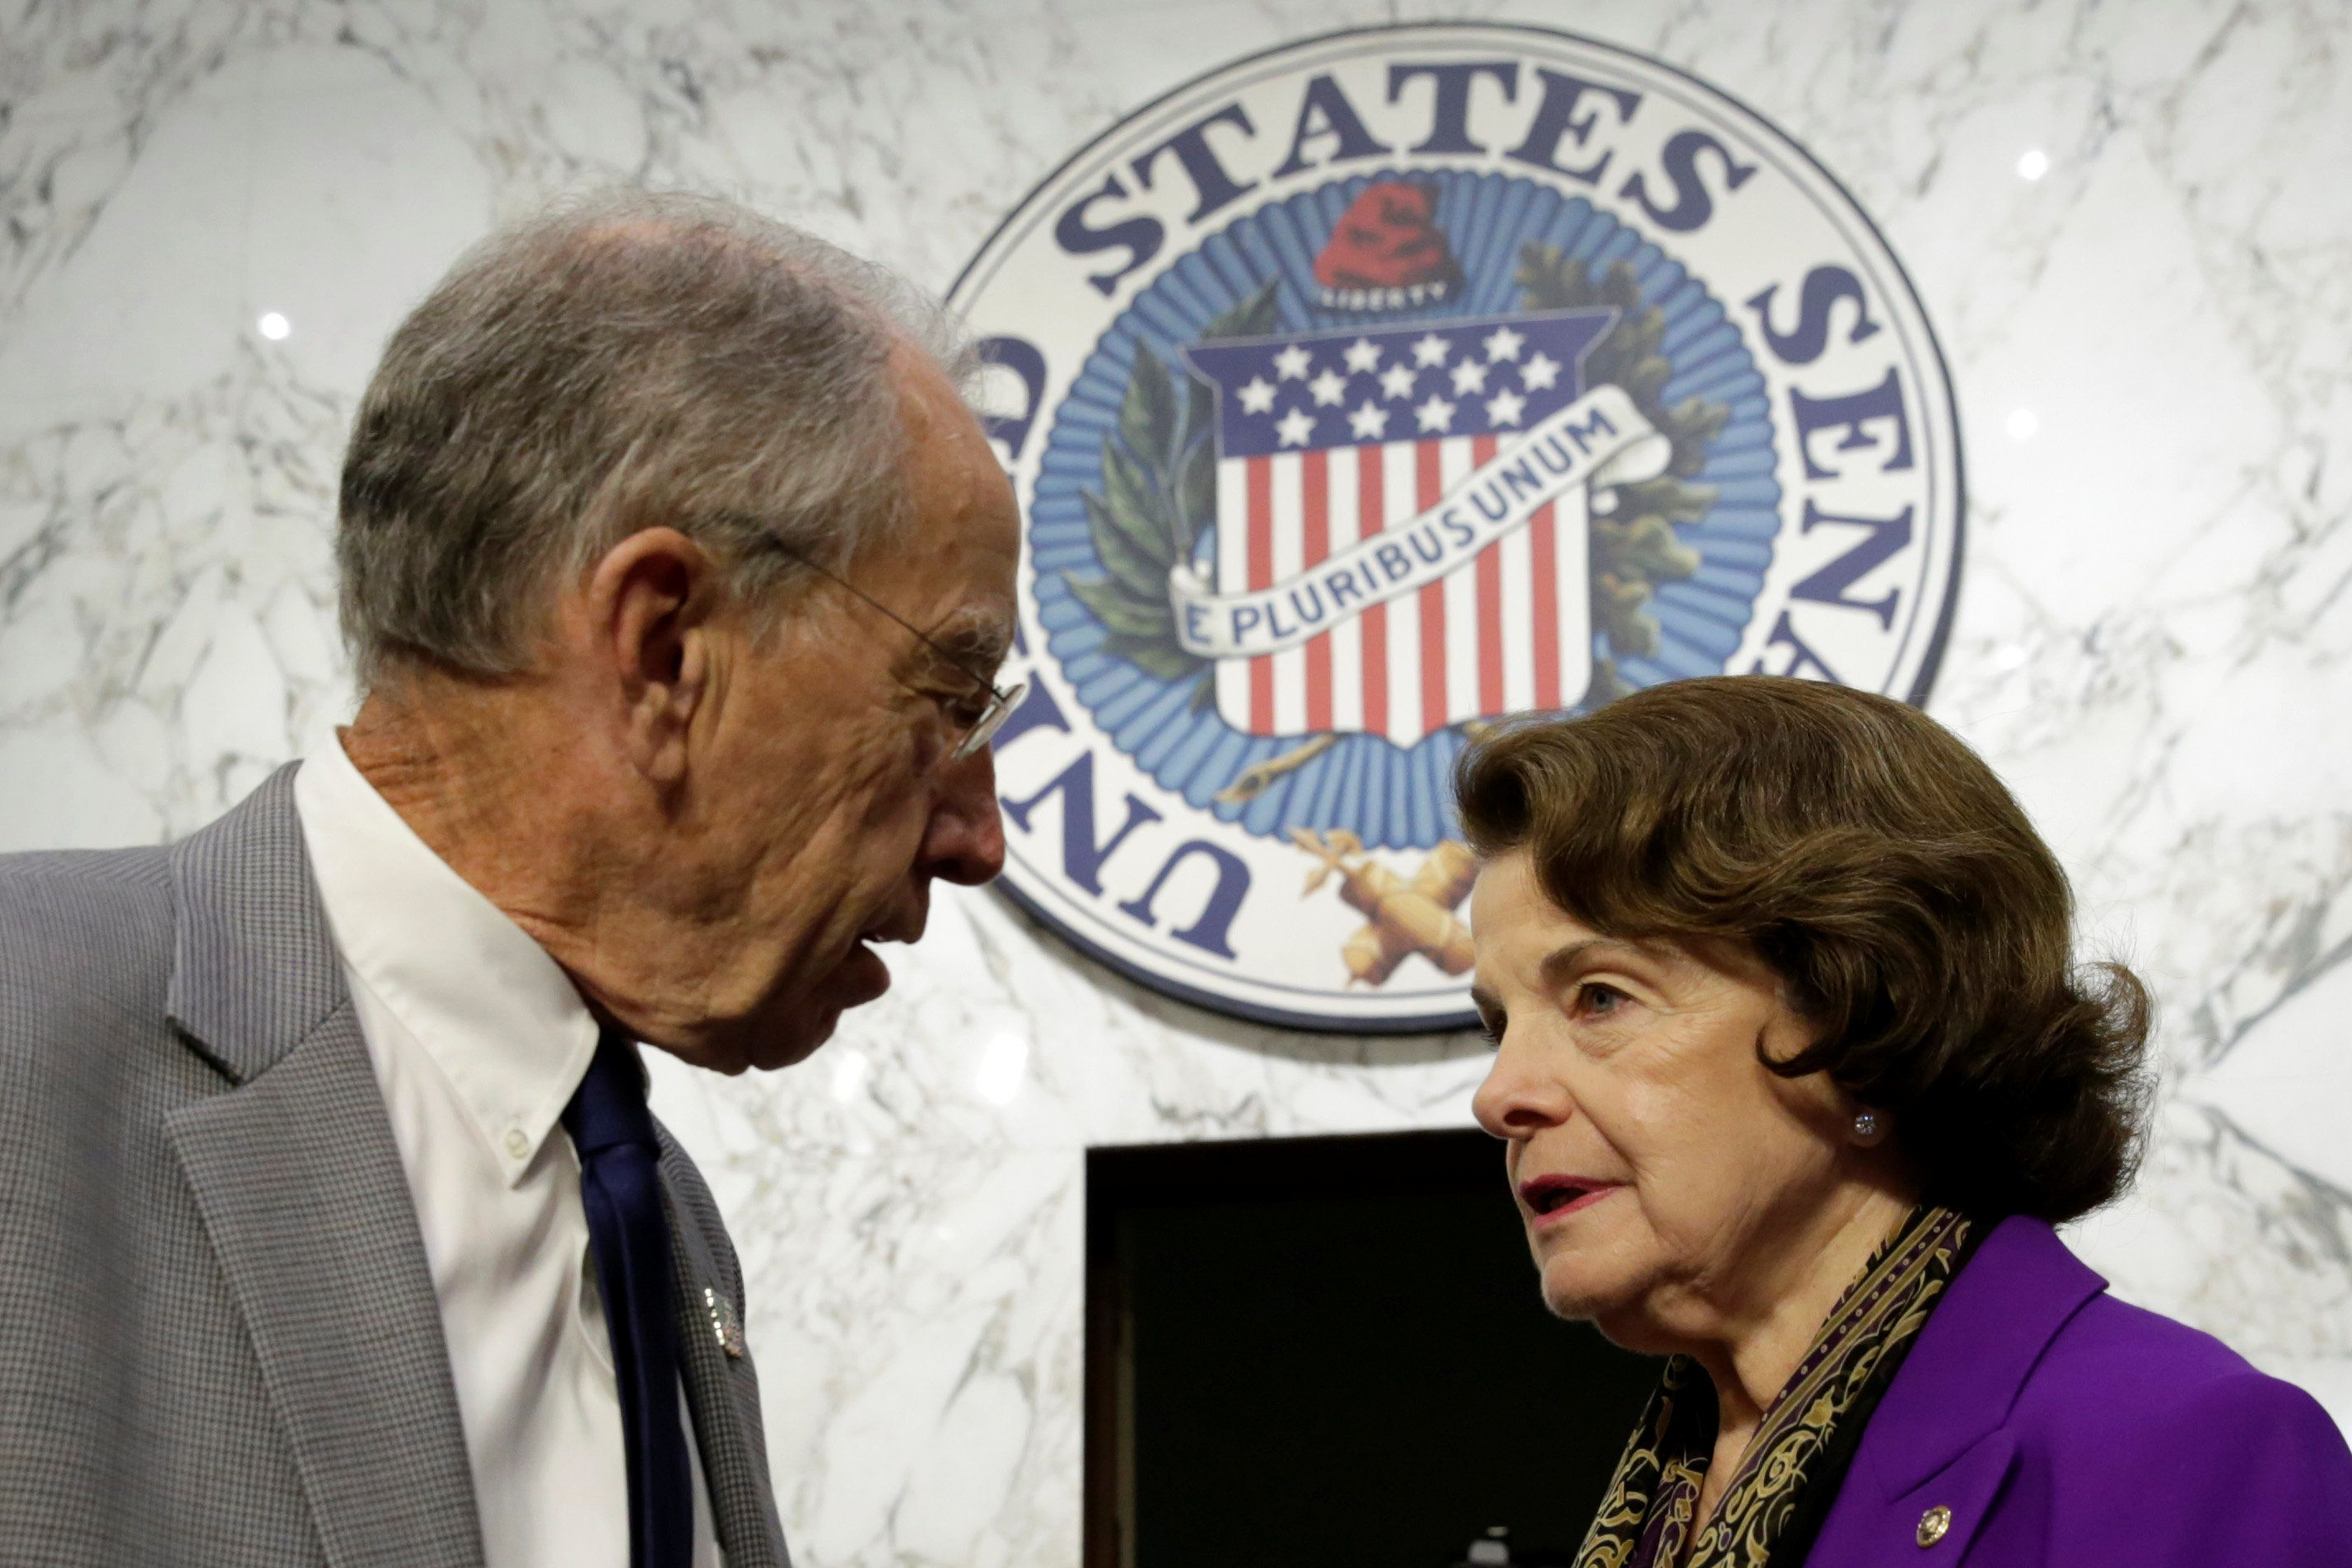 Senate Judiciary Committee Chairman Charles Grassley (R-IA) (L) and Sen. Dianne Feinstein (D-CA) speak before a continuation of Senate Judiciary Committee hearing on alleged Russian meddling in the 2016 presidential election on Capitol Hill in Washington, U.S., July 27, 2017. REUTERS/Yuri Gripas